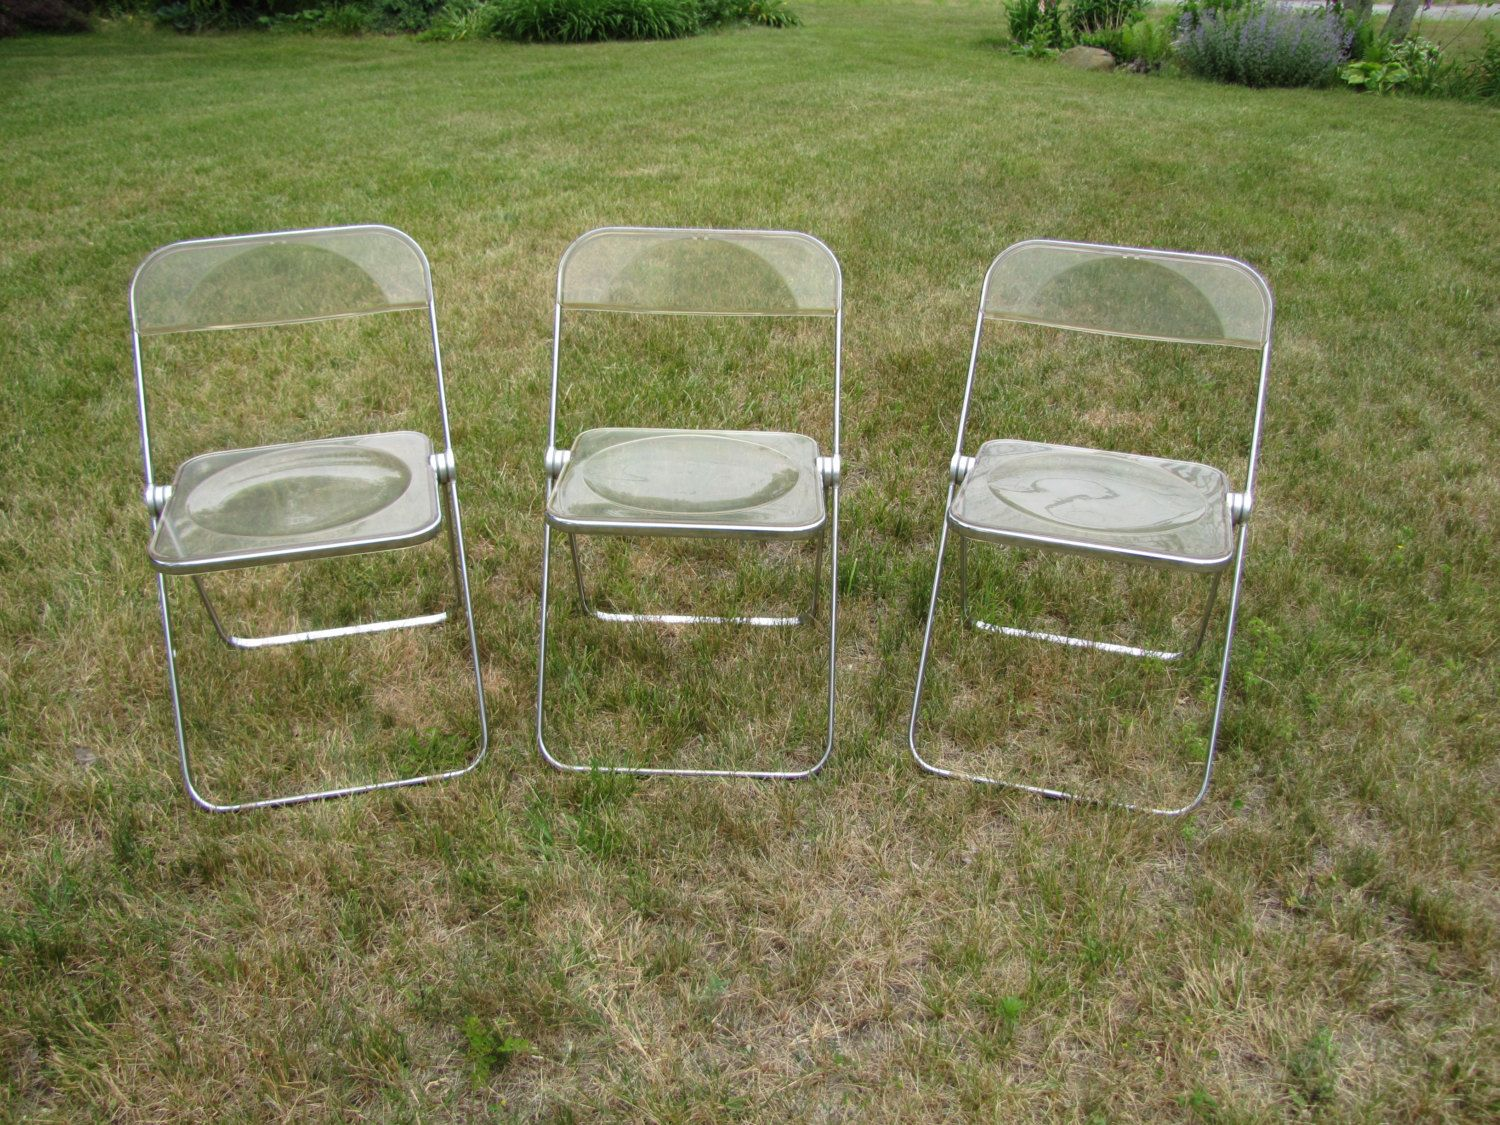 Vintage Lucite Folding Chair Plia Anonima Castelli Italy Two Available Lucite And Chrome Folding Chairs Clear Fol Vintage Lucite Folding Chair Chrome Chair